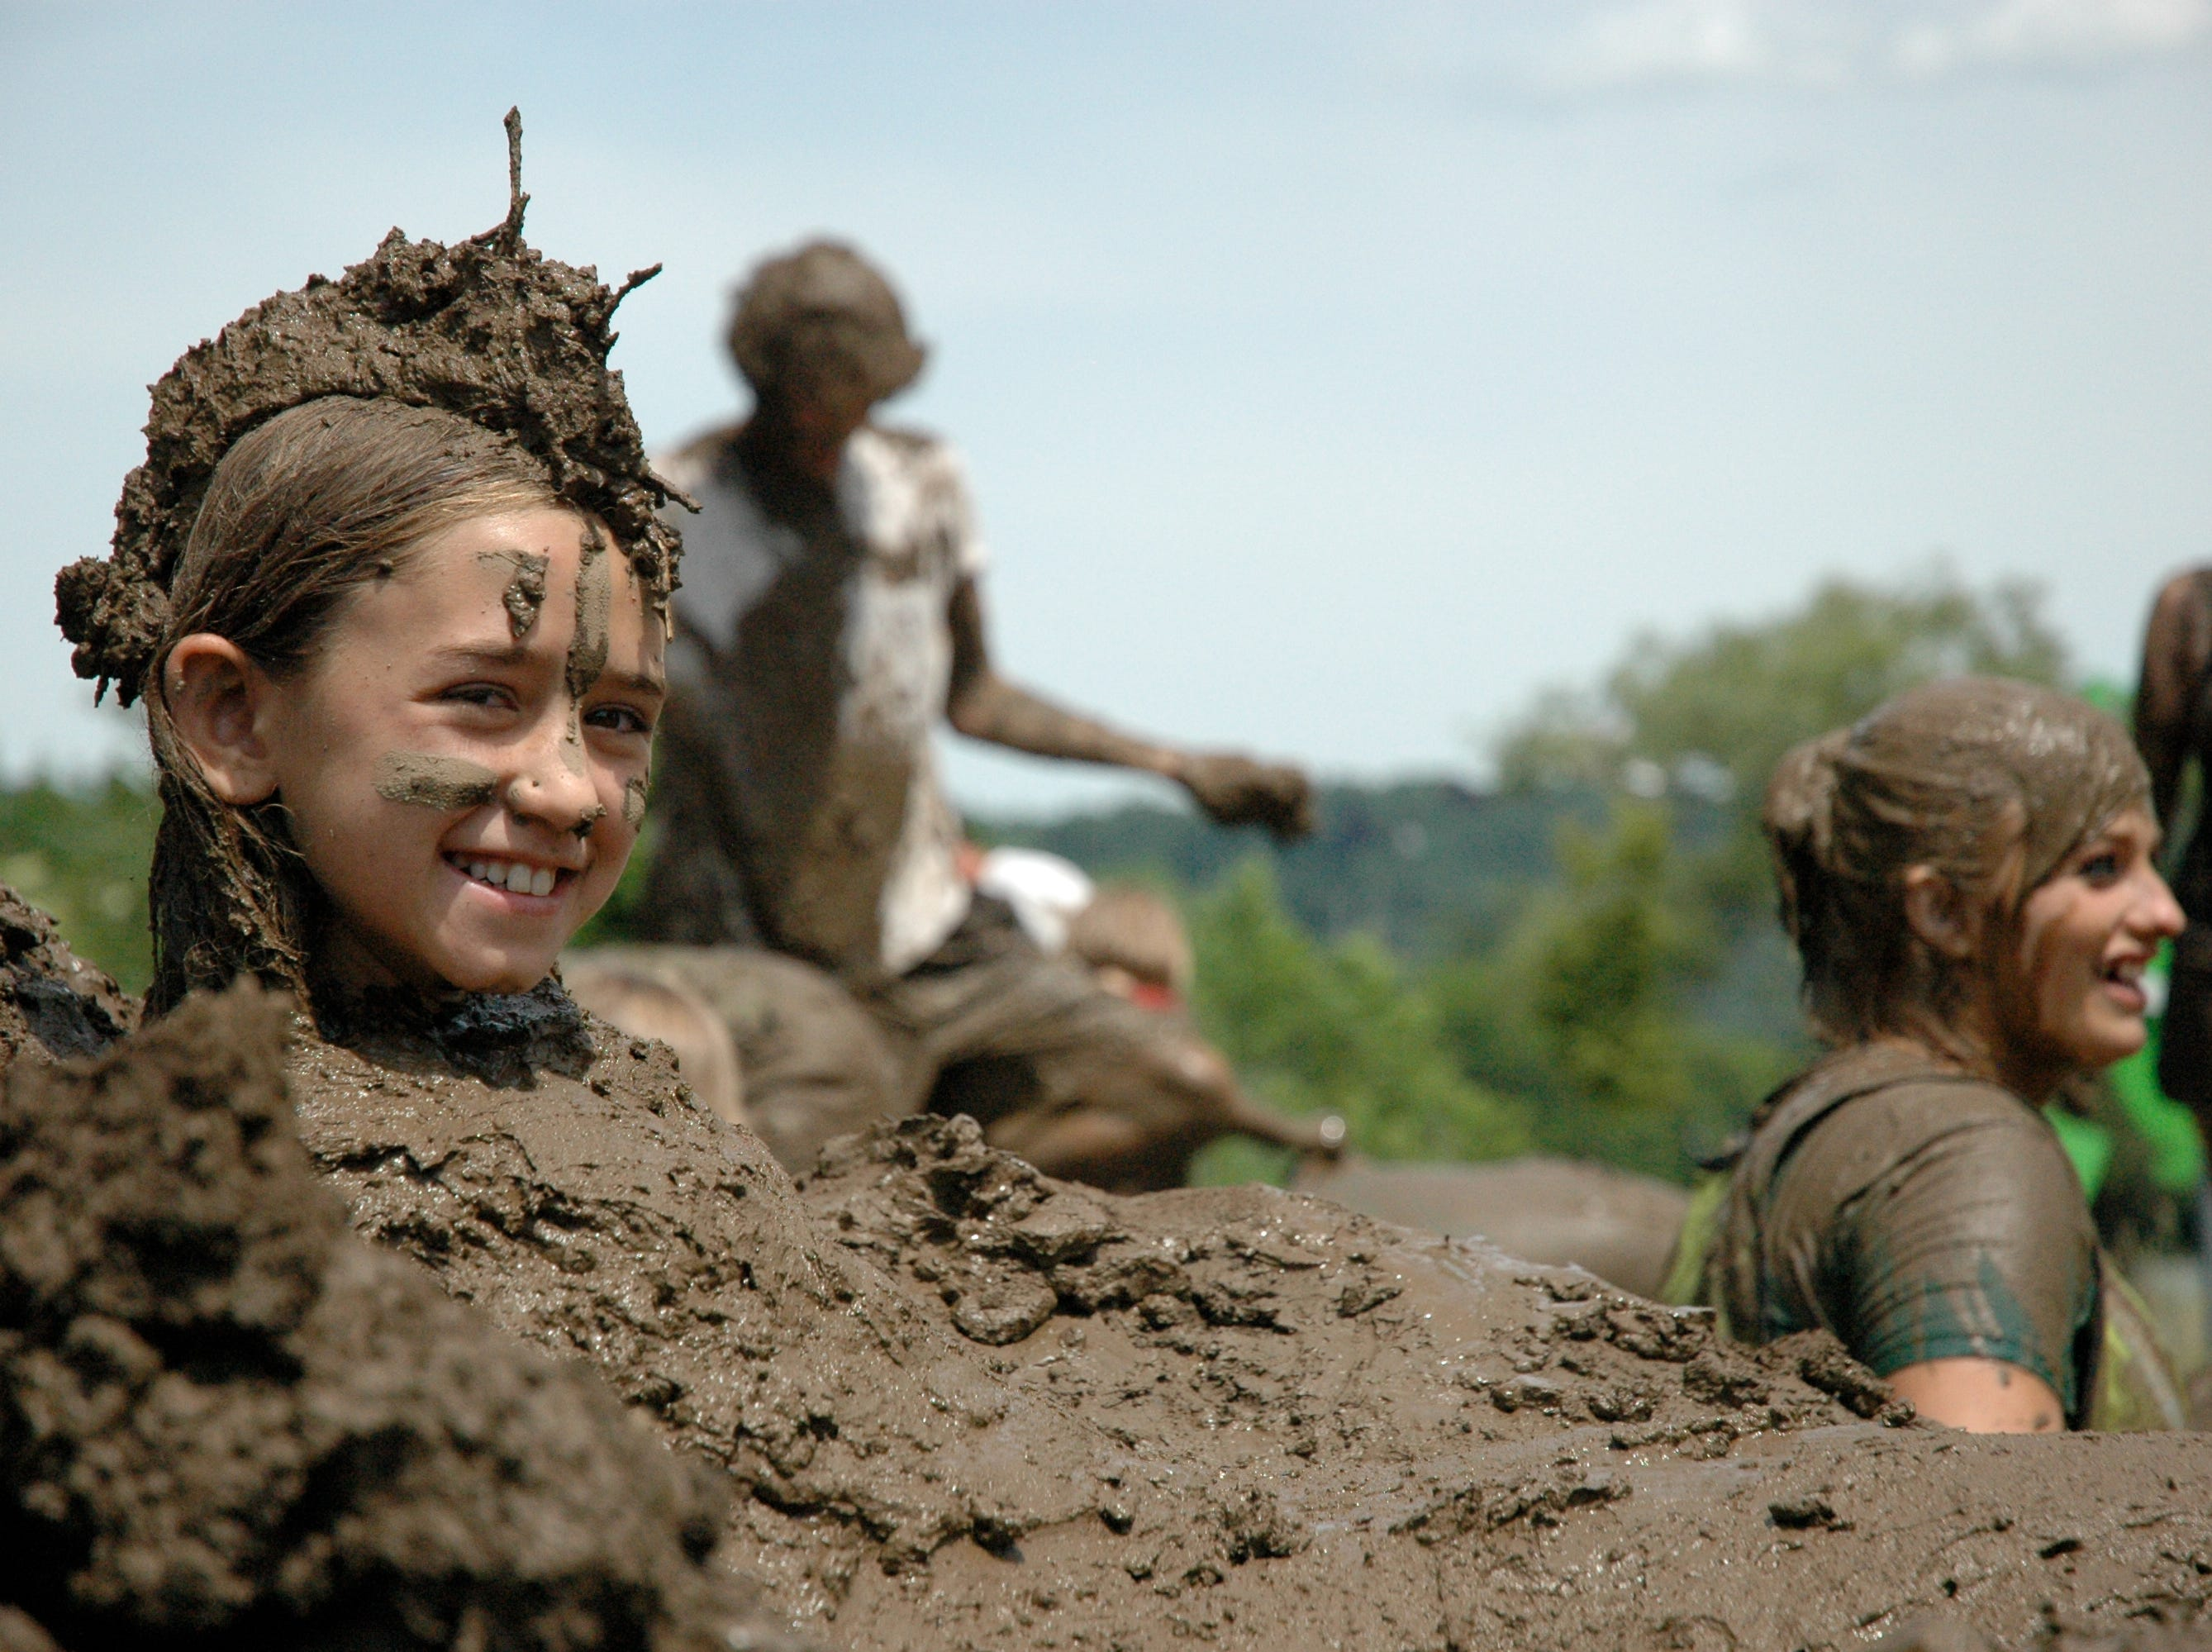 2012: Kids revel in the mud during the International Mud Day festivities in 2012 at the Ithaca ChildrenÕs Garden.